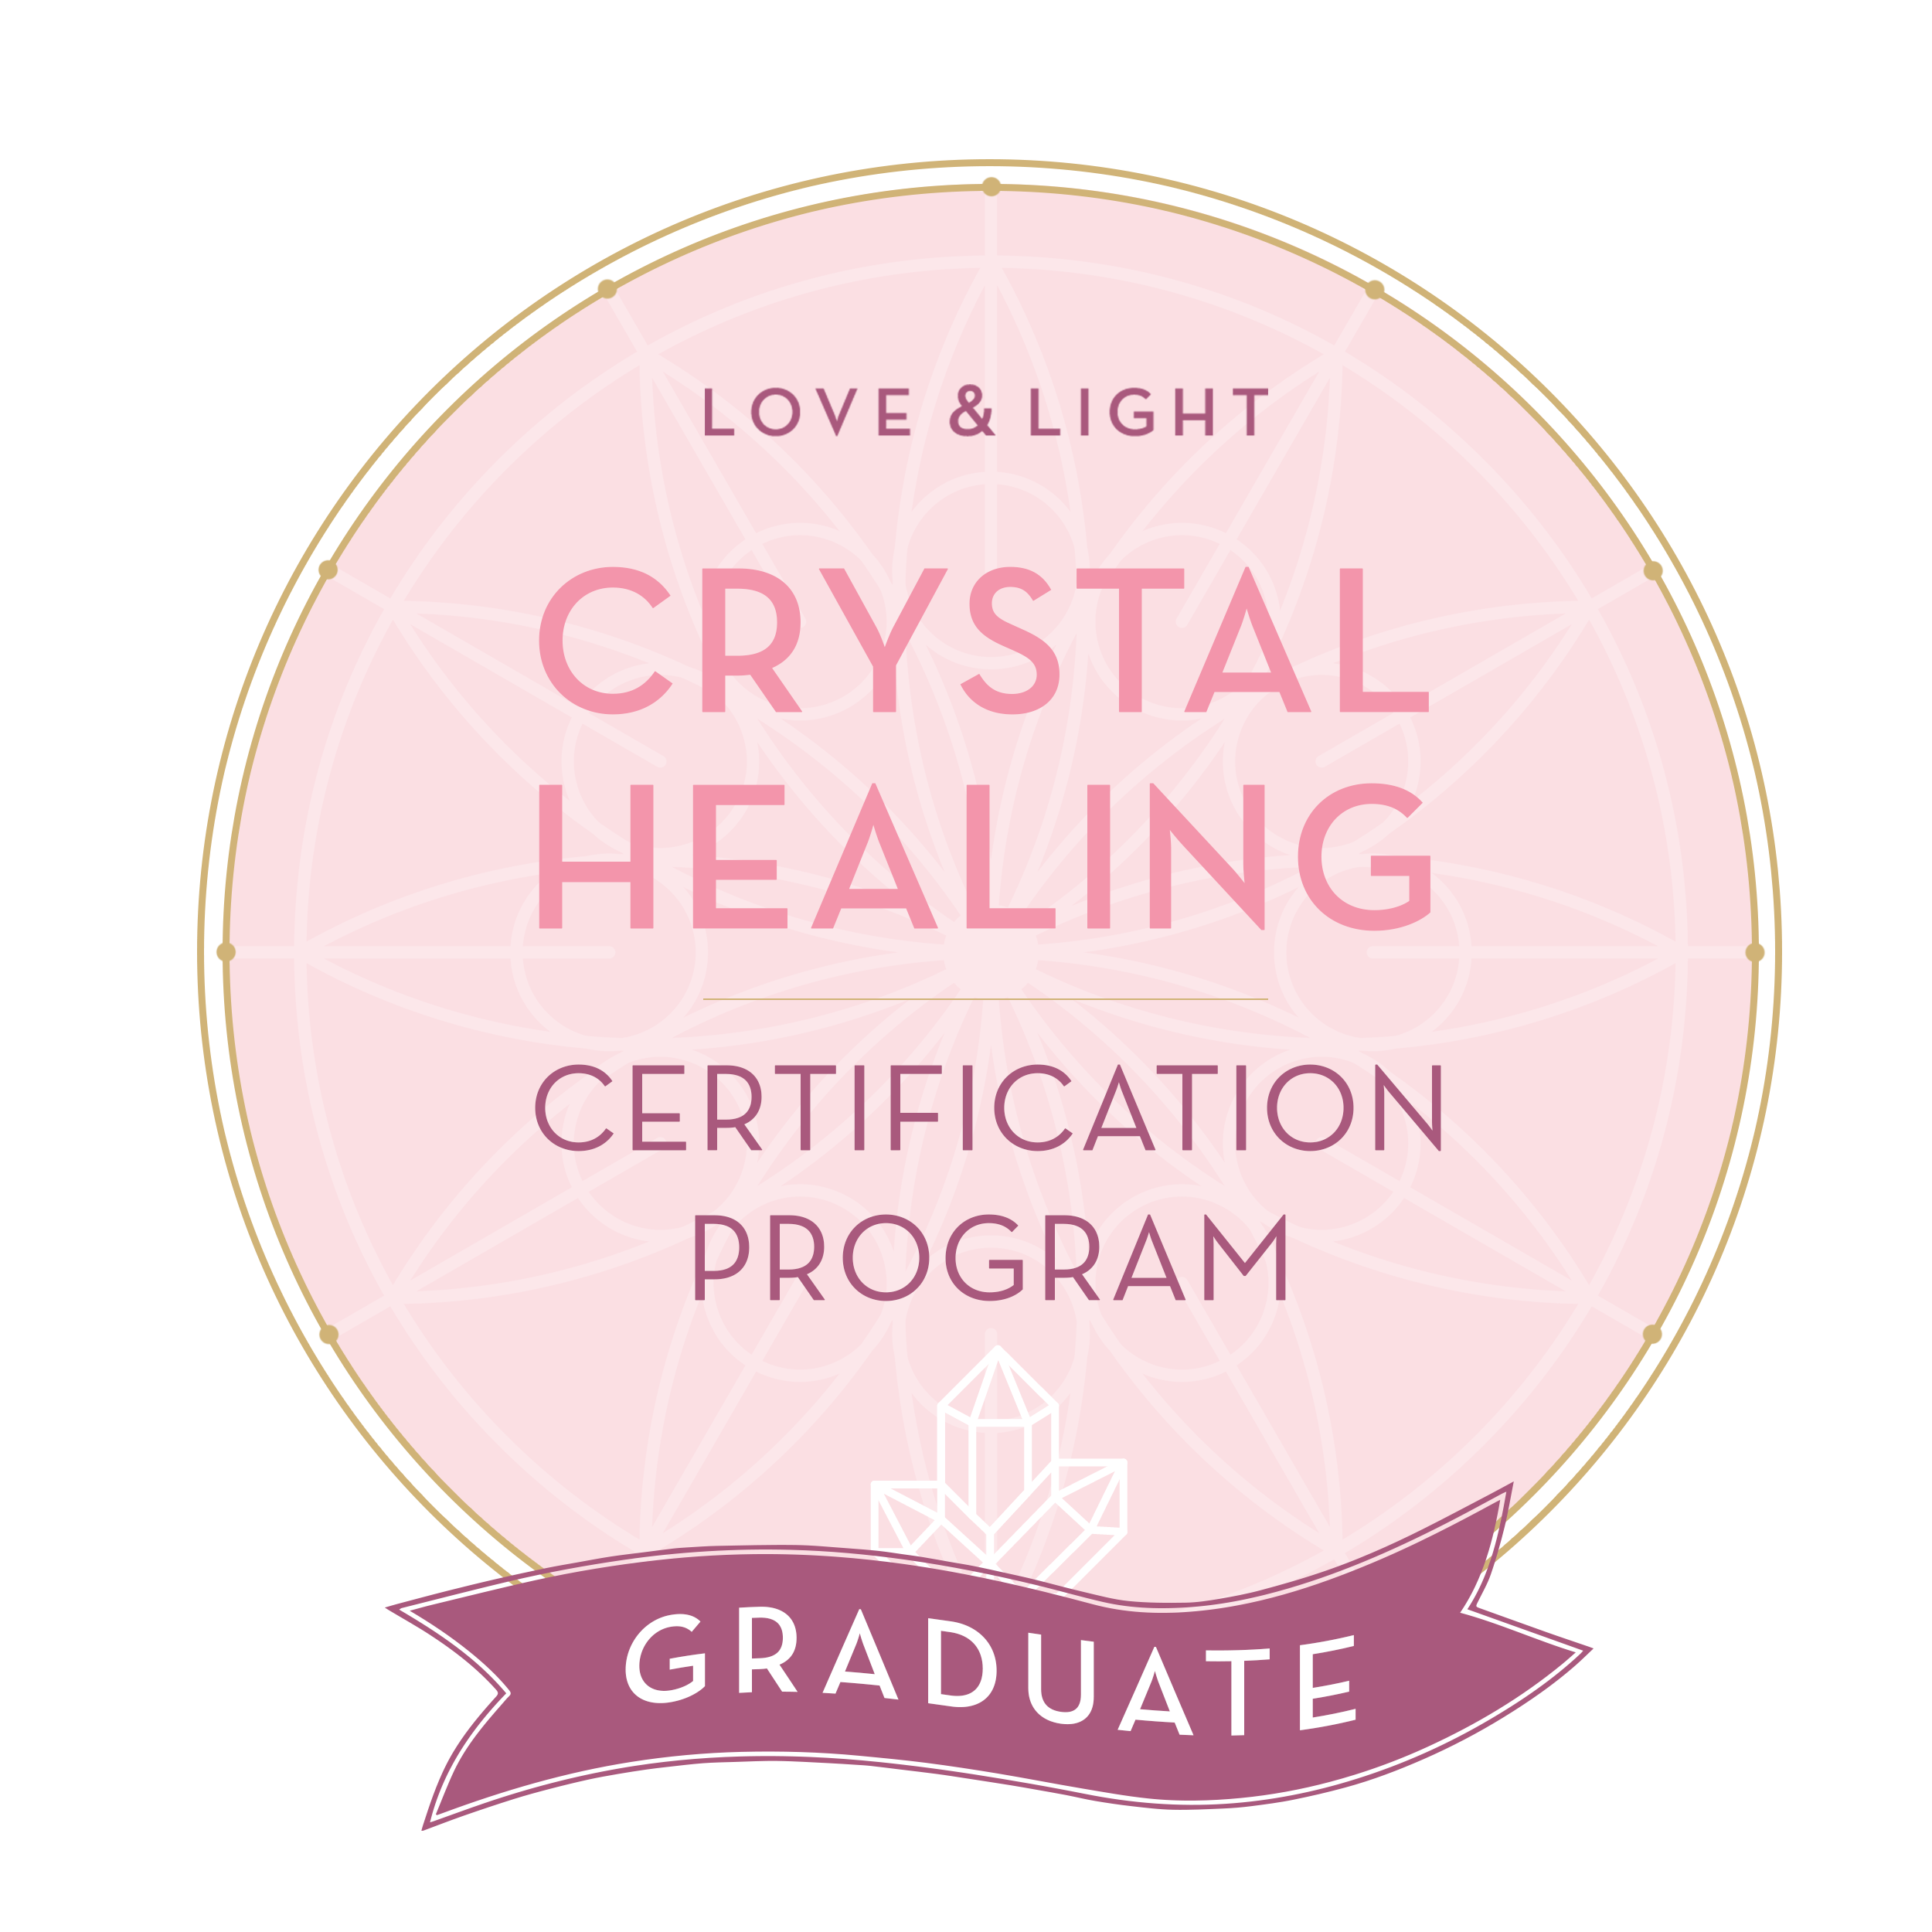 Love & Light Crystal Healing Certificate